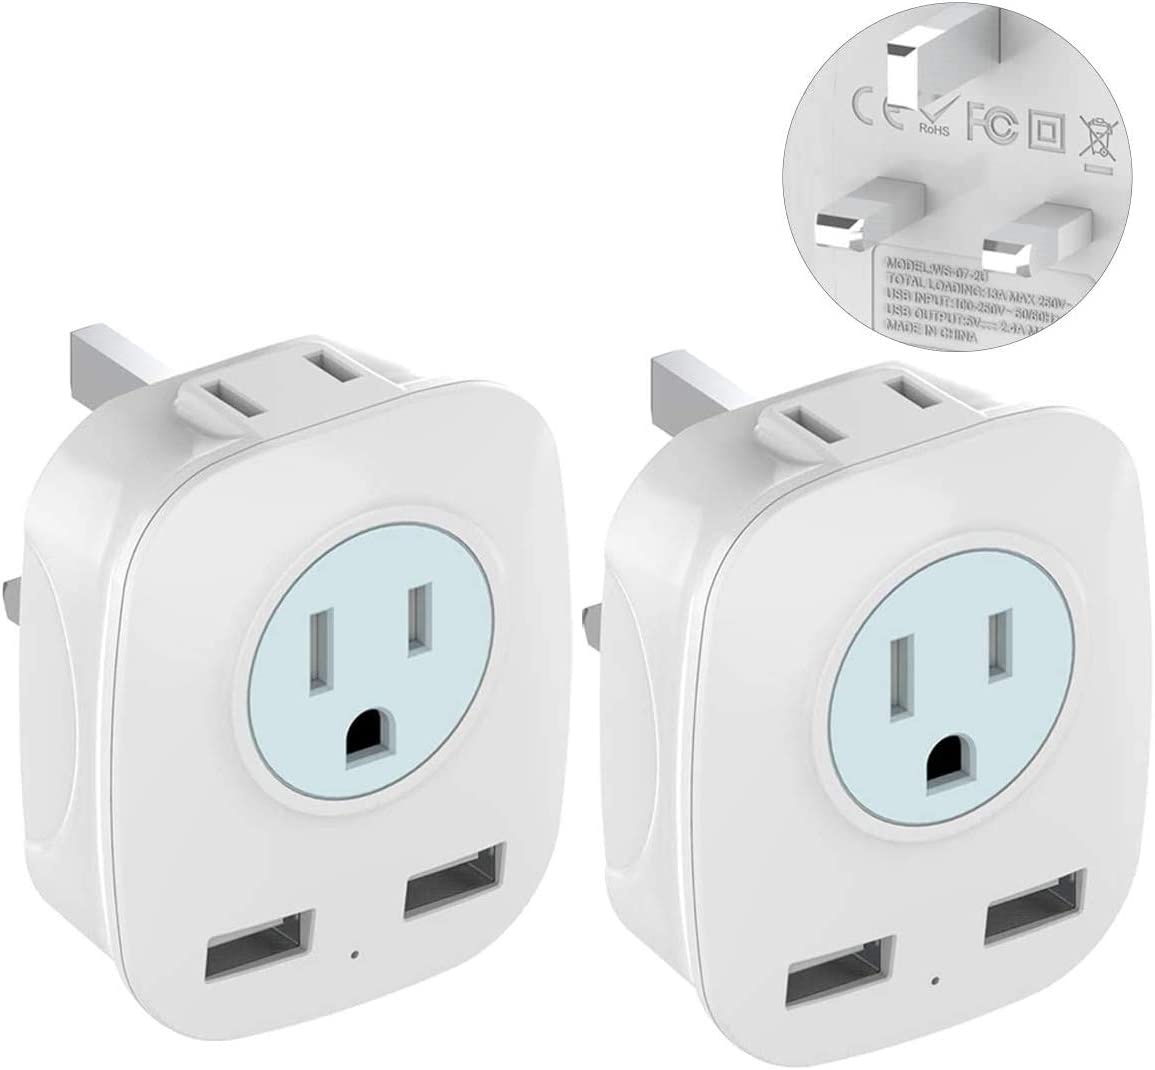 [2-Pack] UK Ireland Hong Kong Travel Plug Adapter with 2 USB Ports, International 2-Outlet Power Adapter, Outlet Adapter for USA to British England Scotland Irish London (Type G)